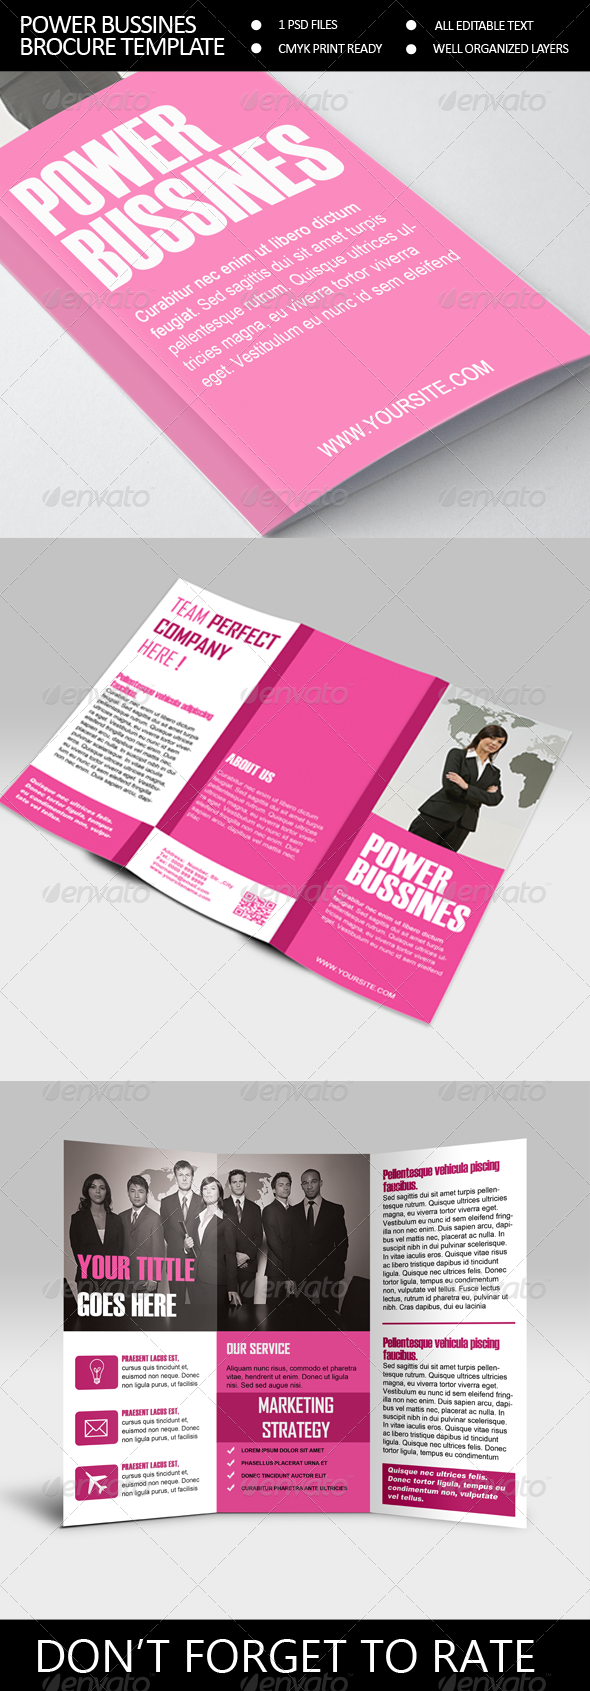 GraphicRiver Power Bussines Trifold Brocure Template 6875907